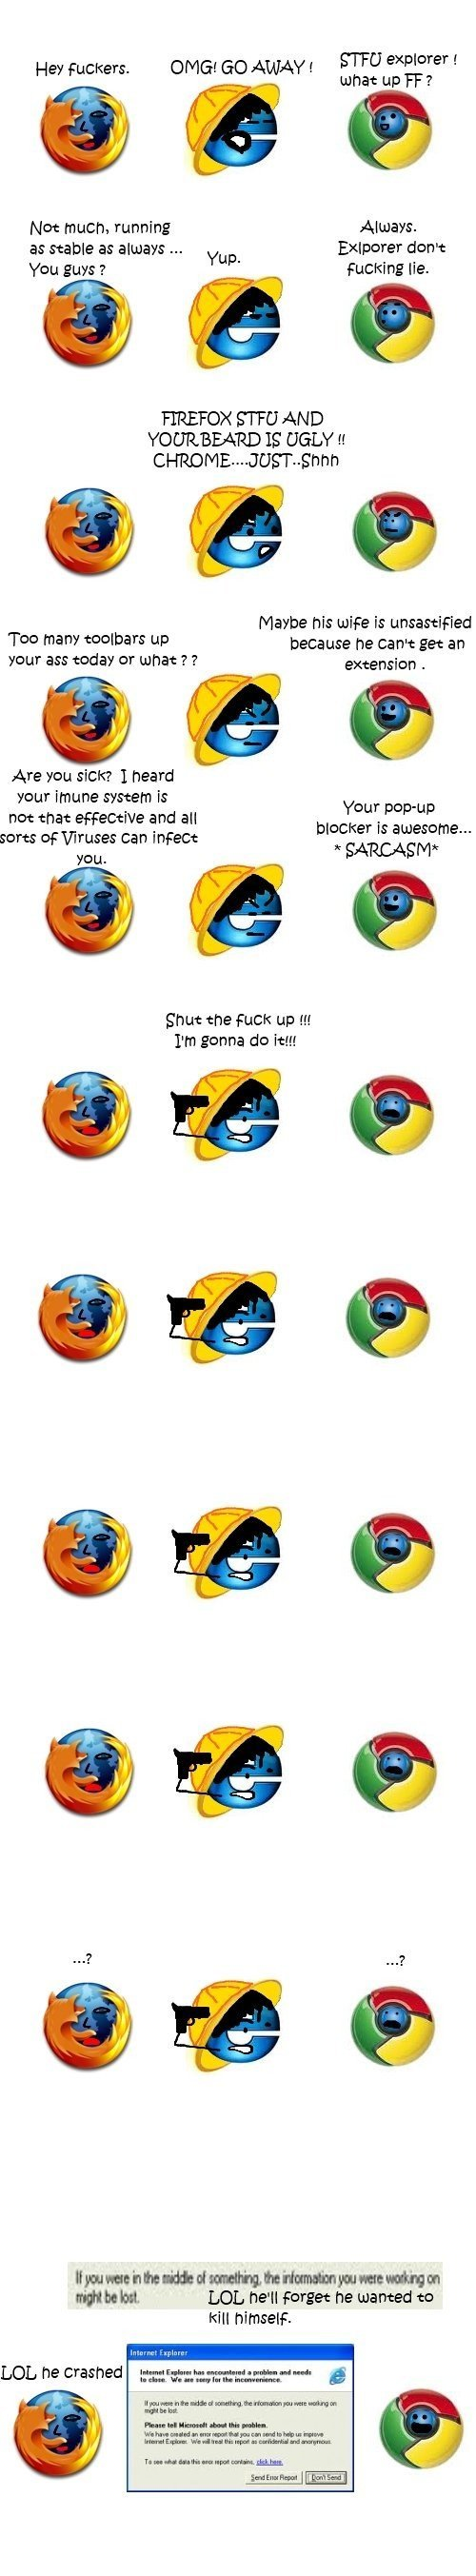 A day in the life of Internet Explorer. no matter how hard they try, they will never be able to repair IE's bad reputation. GITU explorer E es bercers. H F what